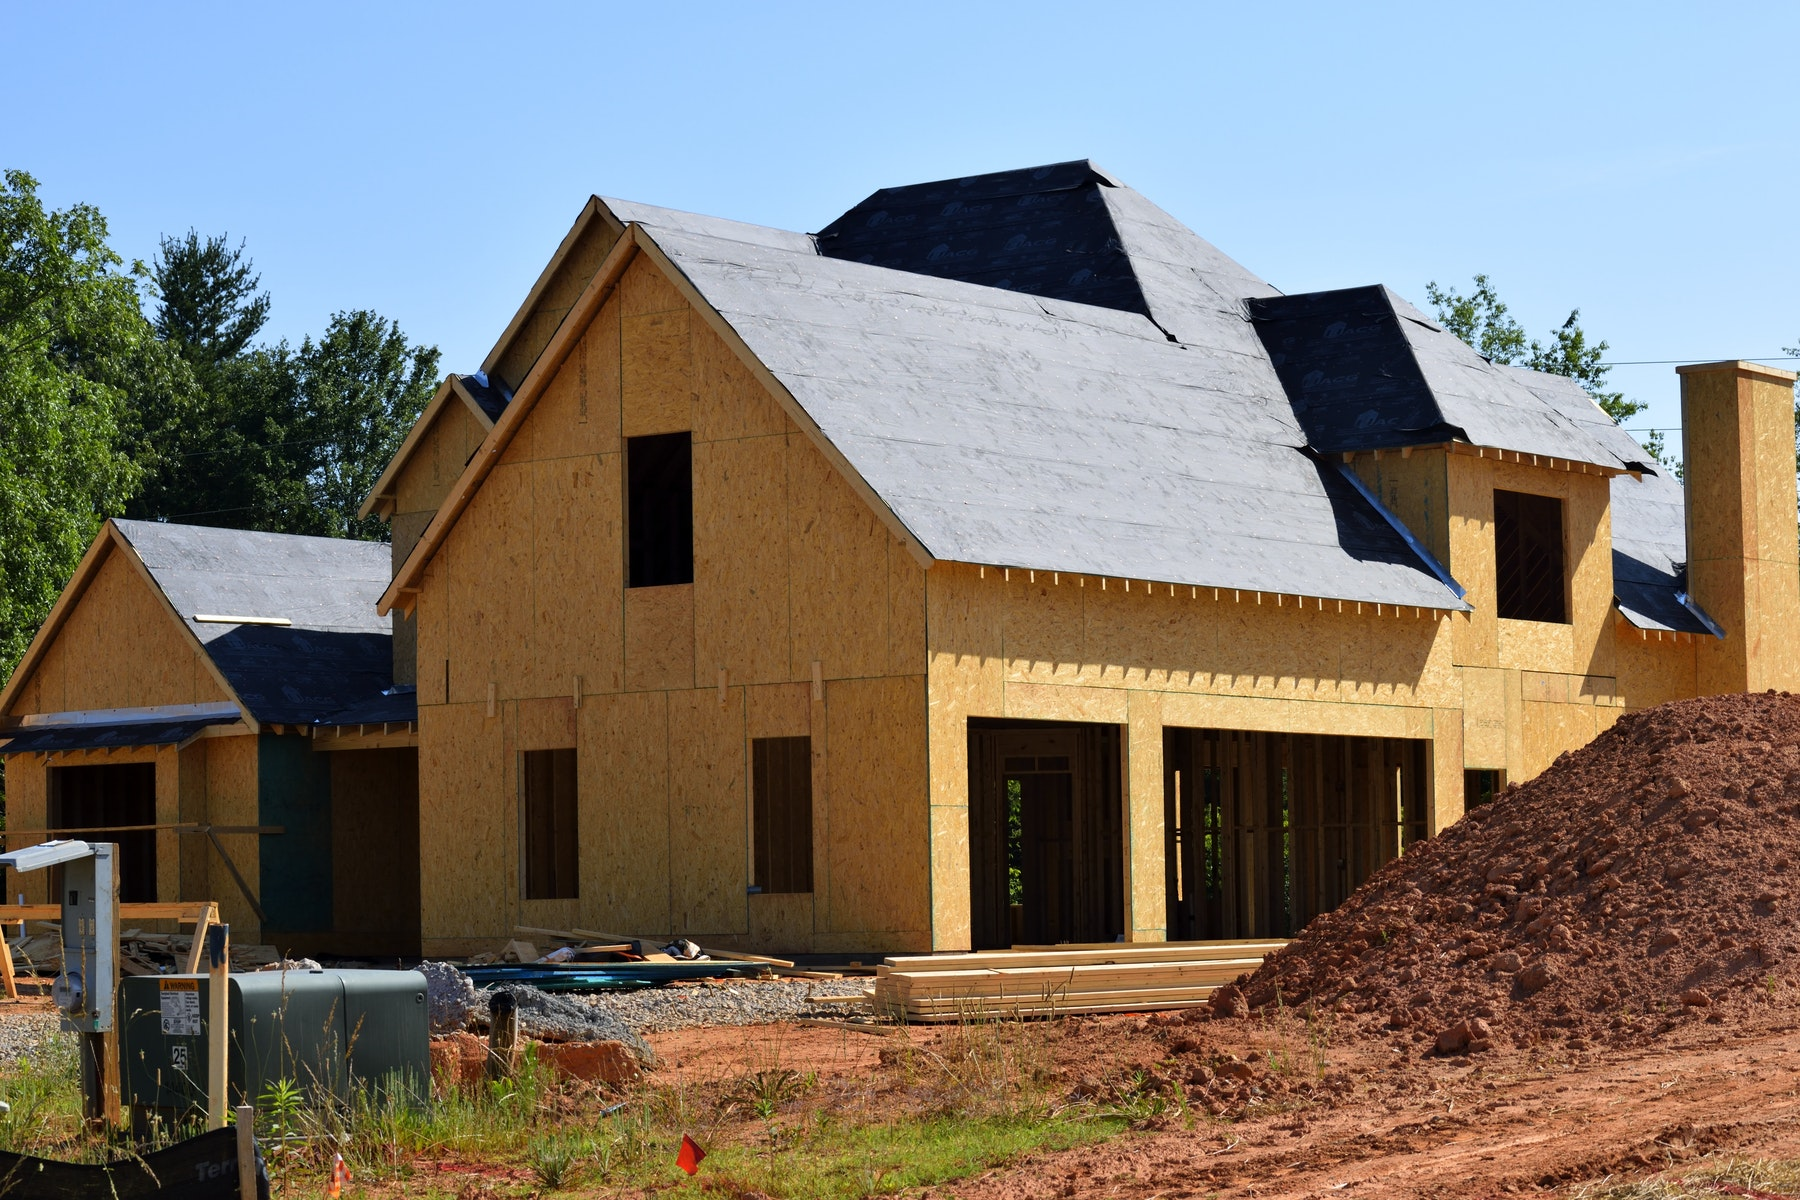 7 Reasons to Be Bullish on US Homebuilders